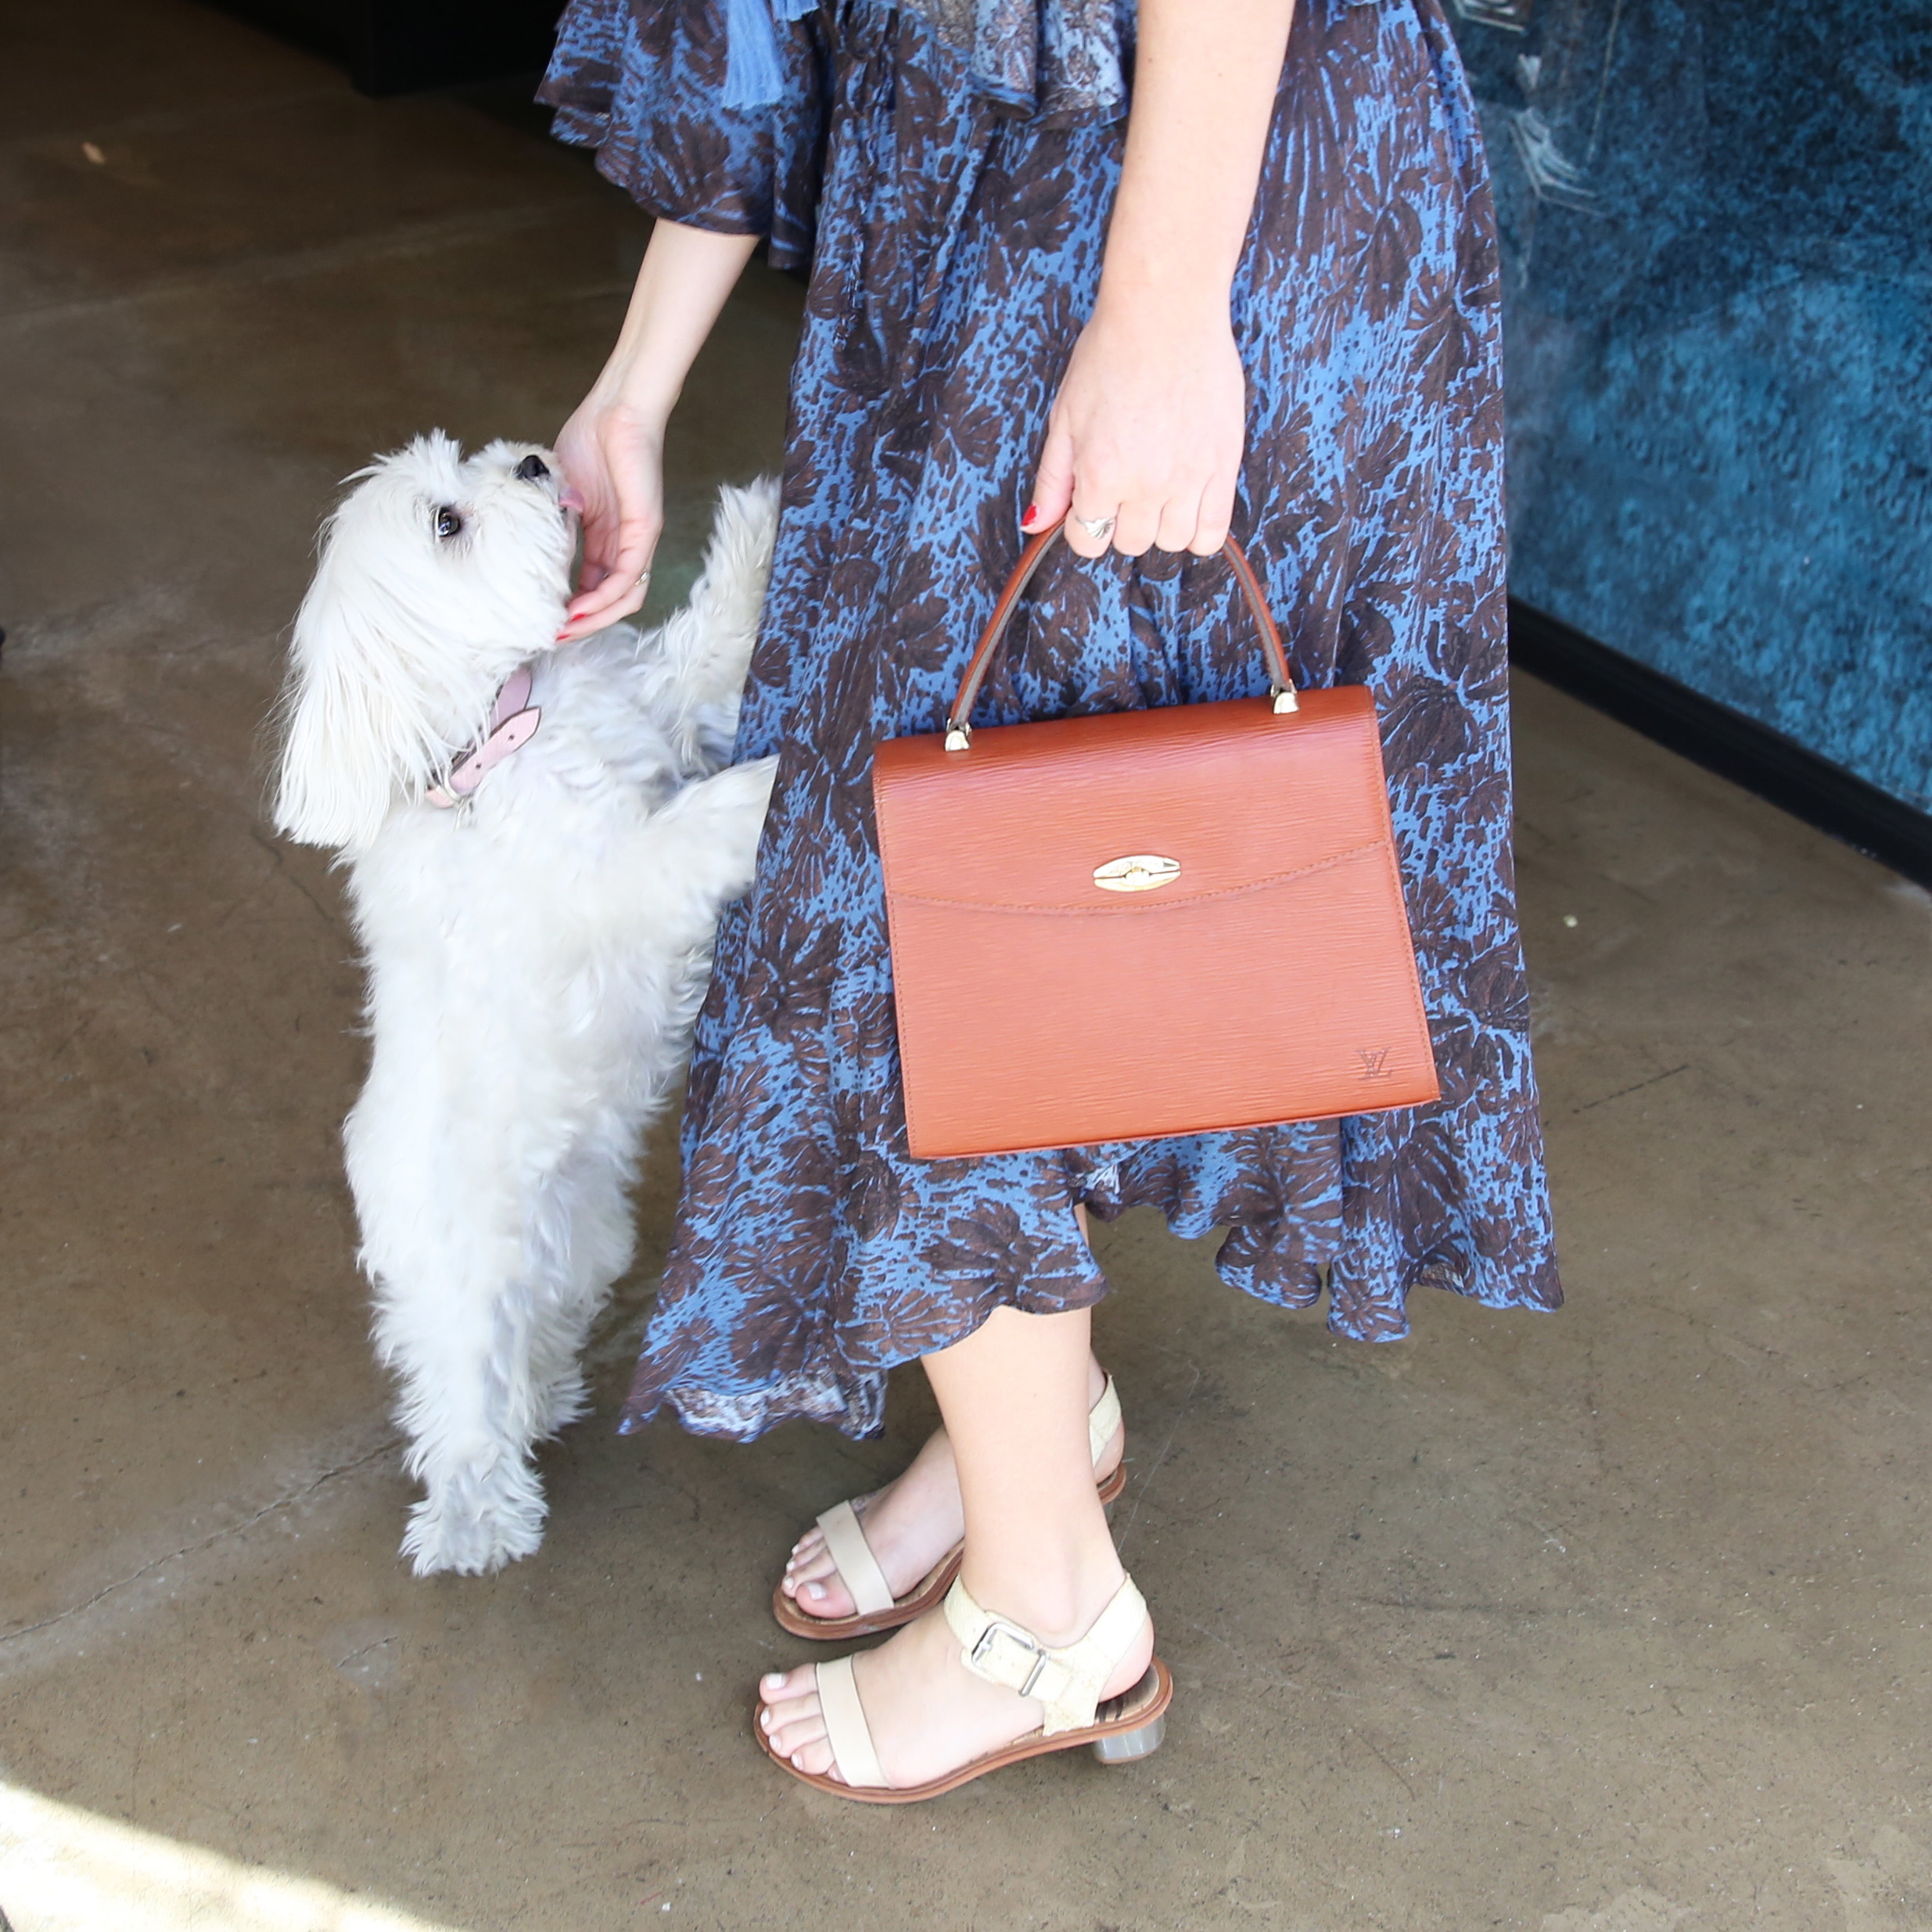 Ladybug getting a lick during our shopping trip! Sandals by Sam Edelman, bag vintage Malesherbes Louis Vuitton.